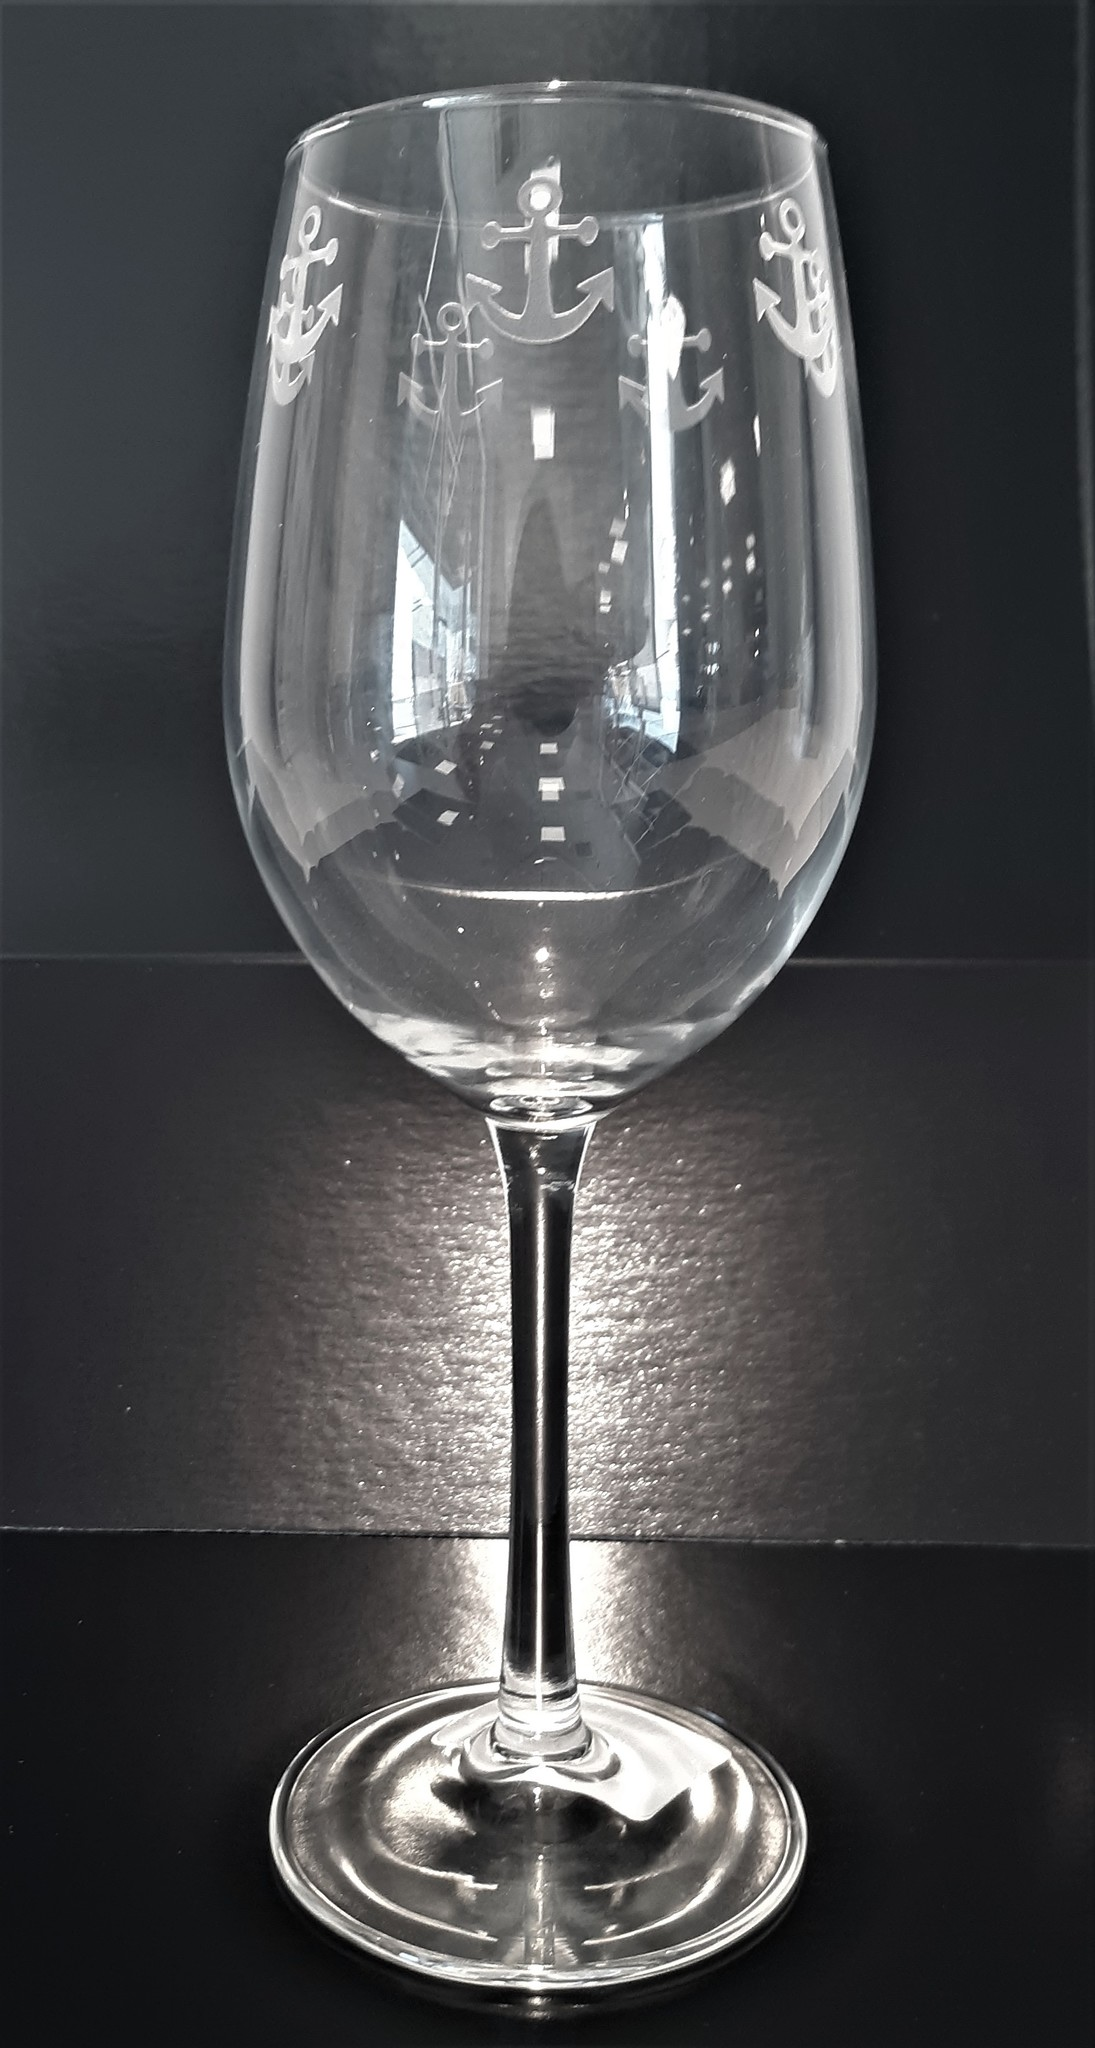 Rolf Glass Anchor Goblet White Wine 12oz